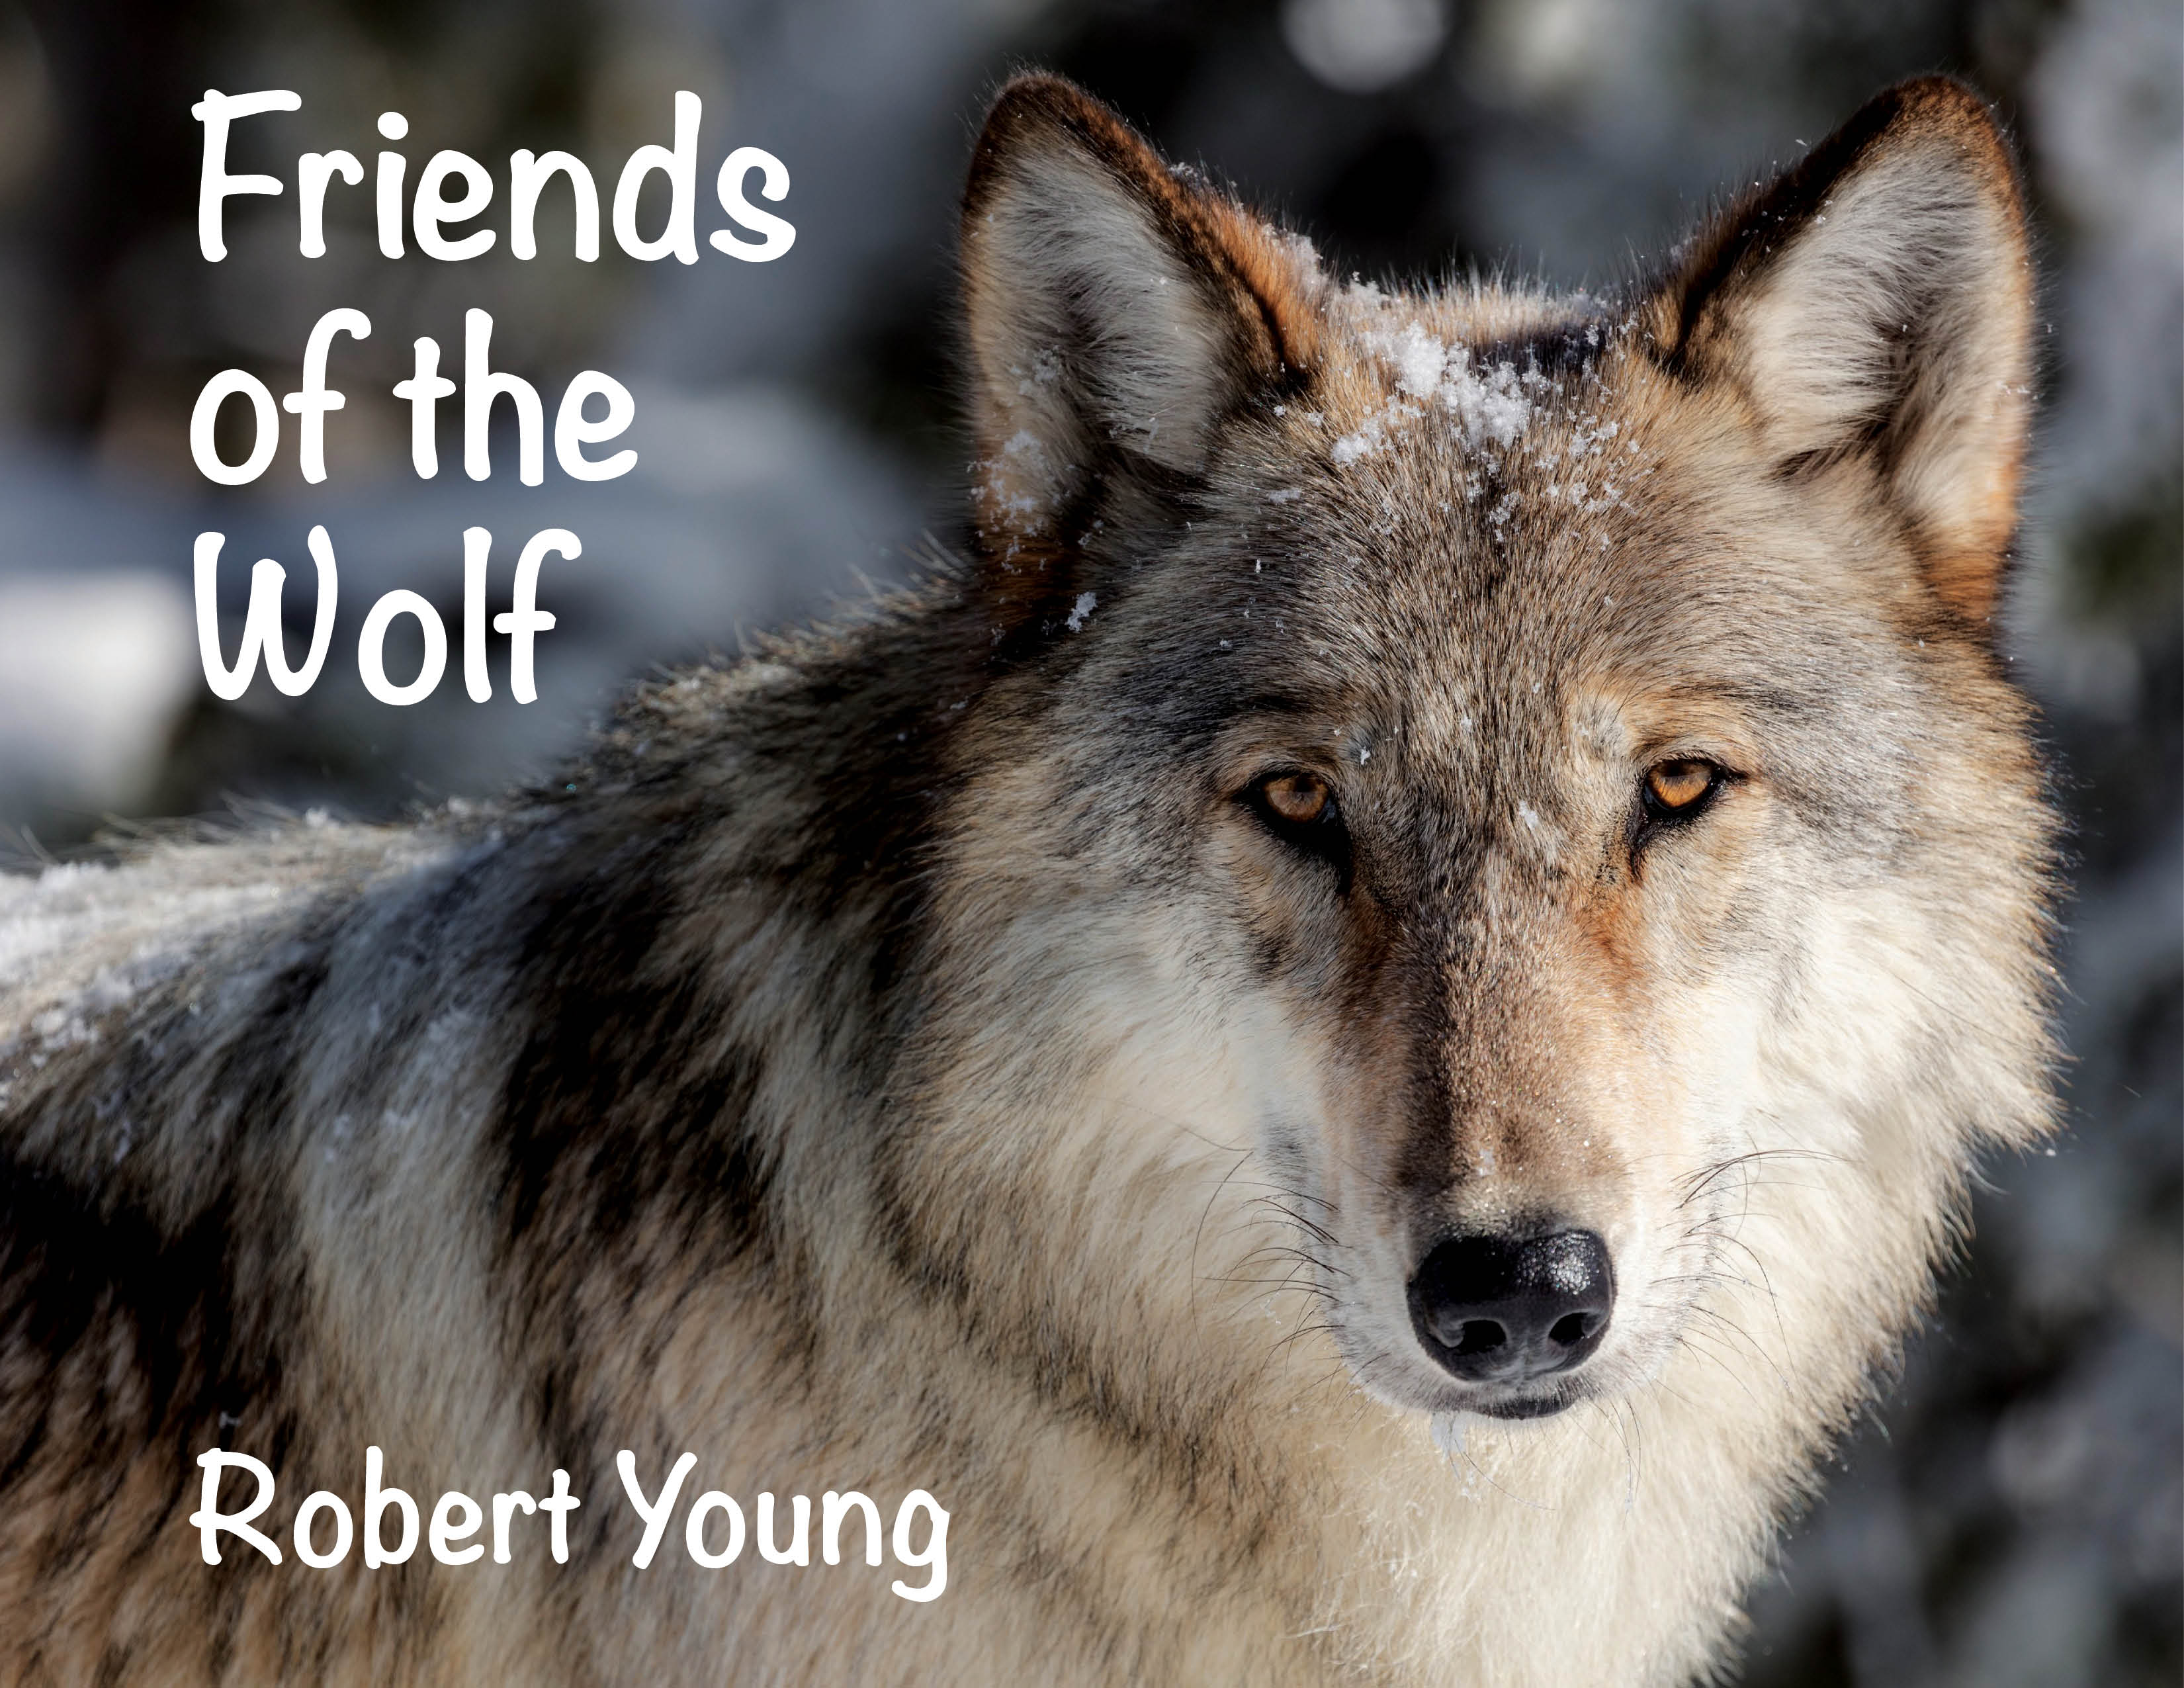 Friends of the Wolf